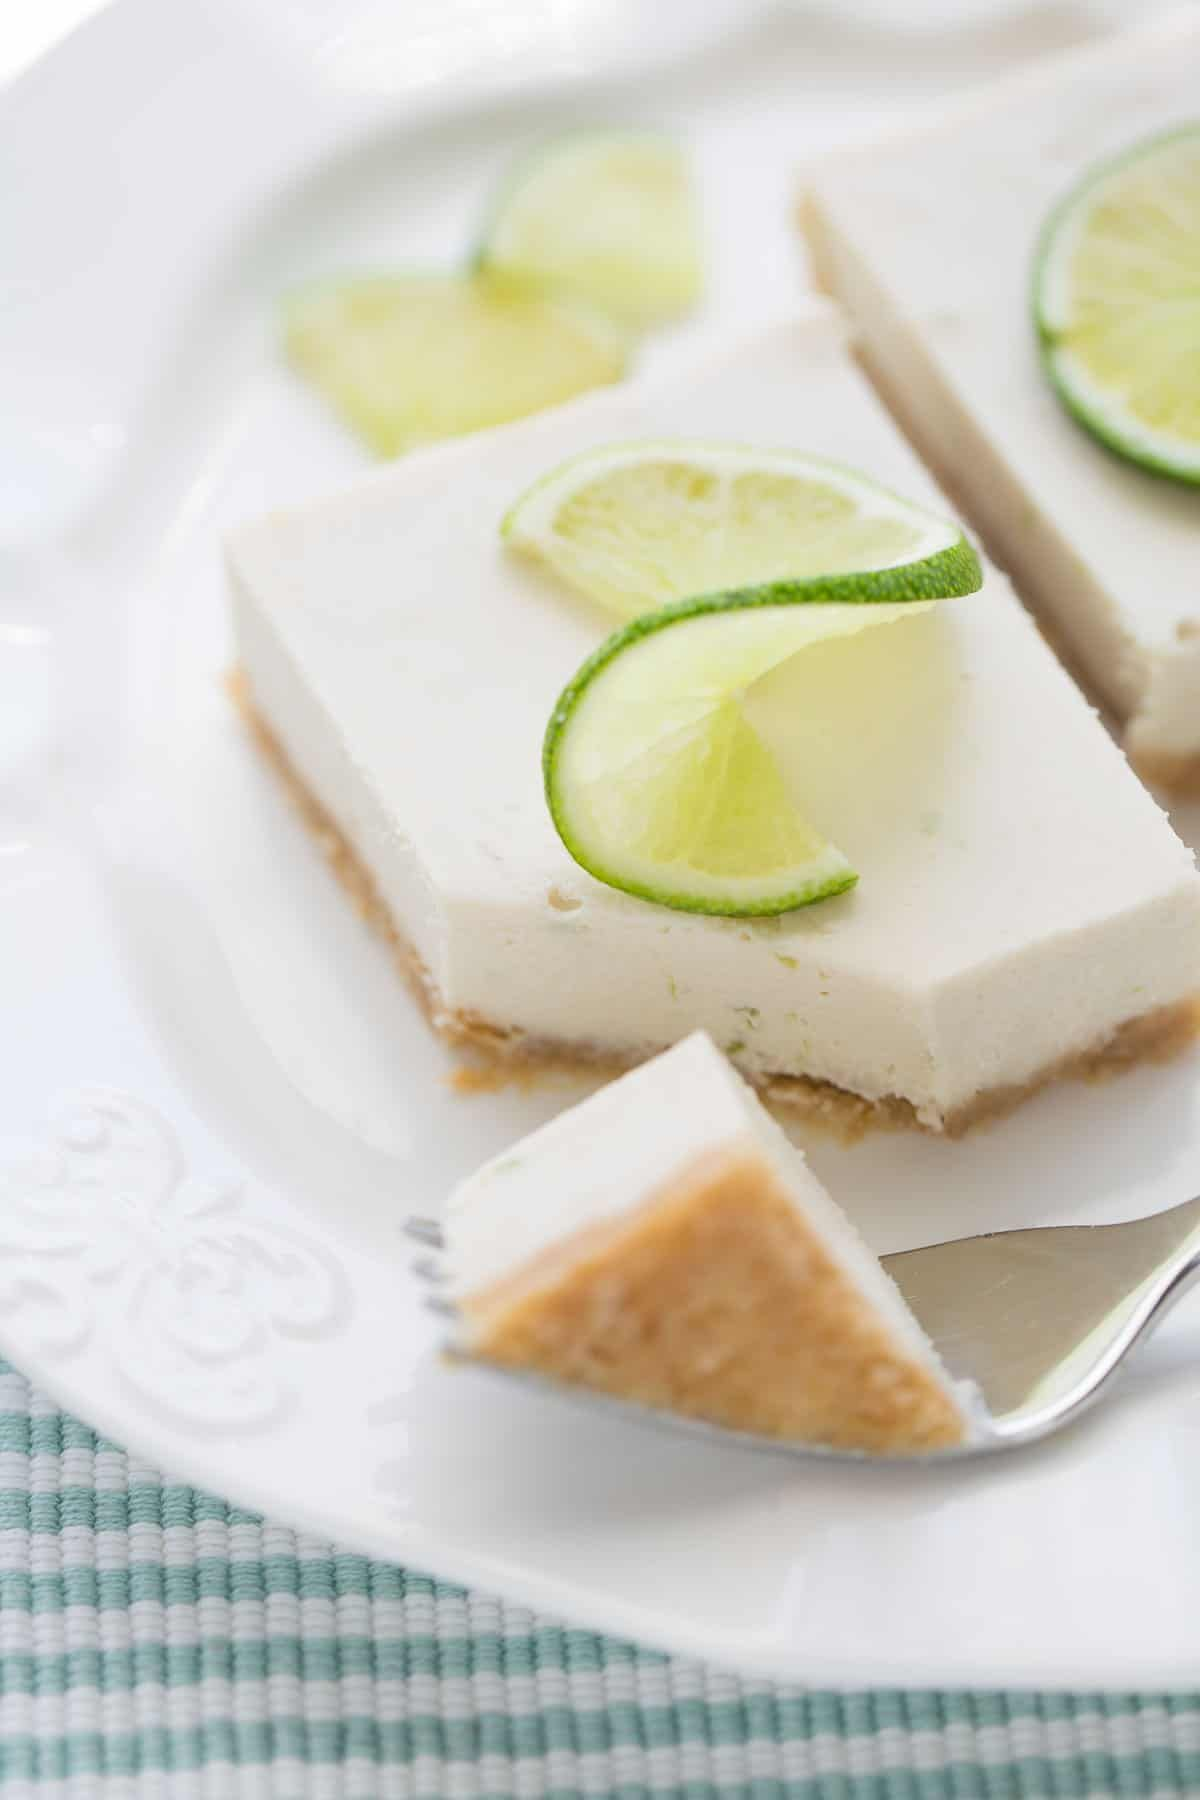 Vegan Key Lime Pie Bars Recipe In 2020 Vegan Key Lime Pie Vegan Key Lime Gluten Free Key Lime Pie